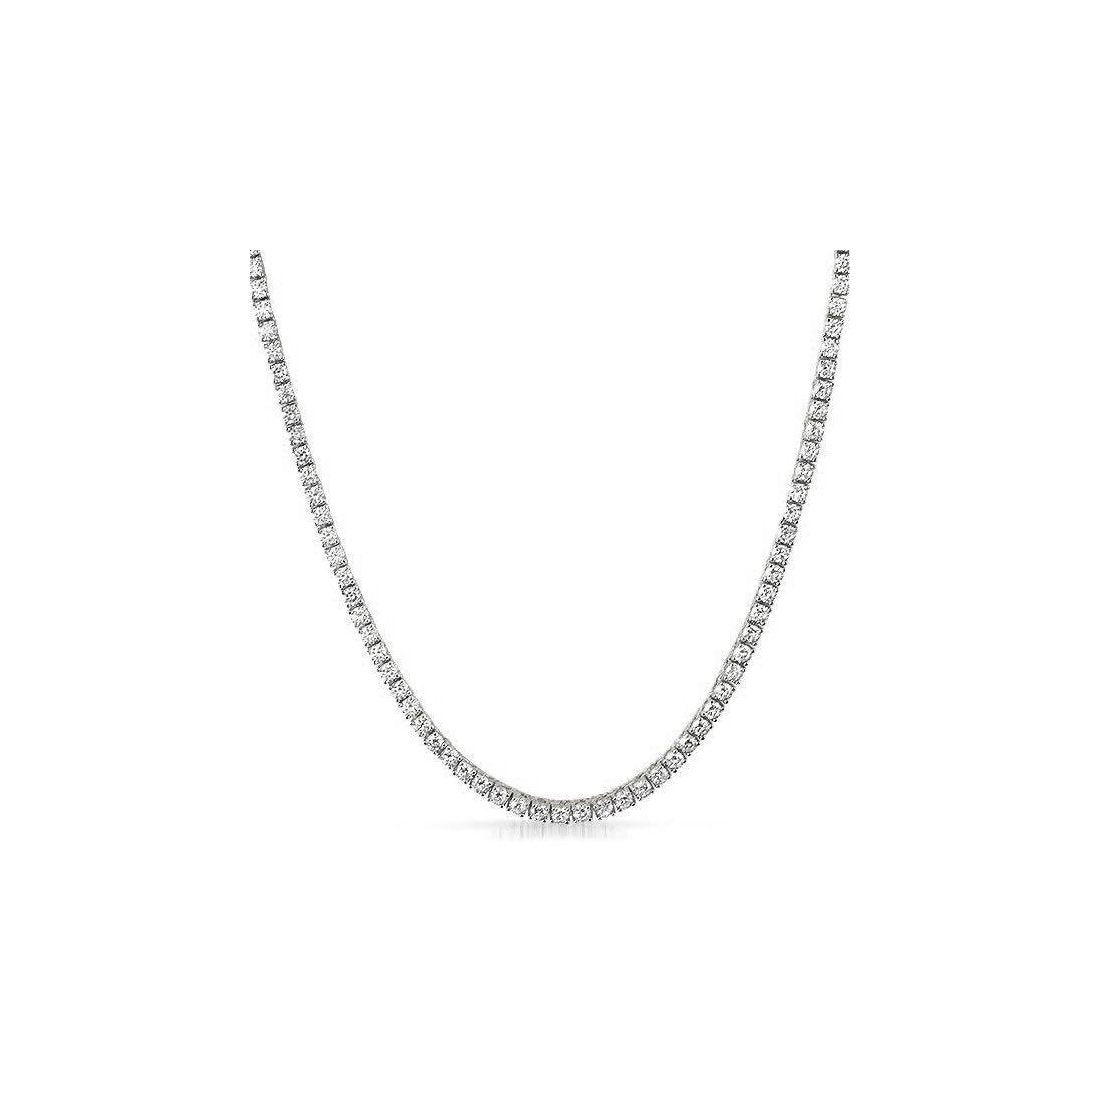 "3MM CZ Tennis Necklaces .925 Sterling Silver Length ""17 to 30"" Inches"